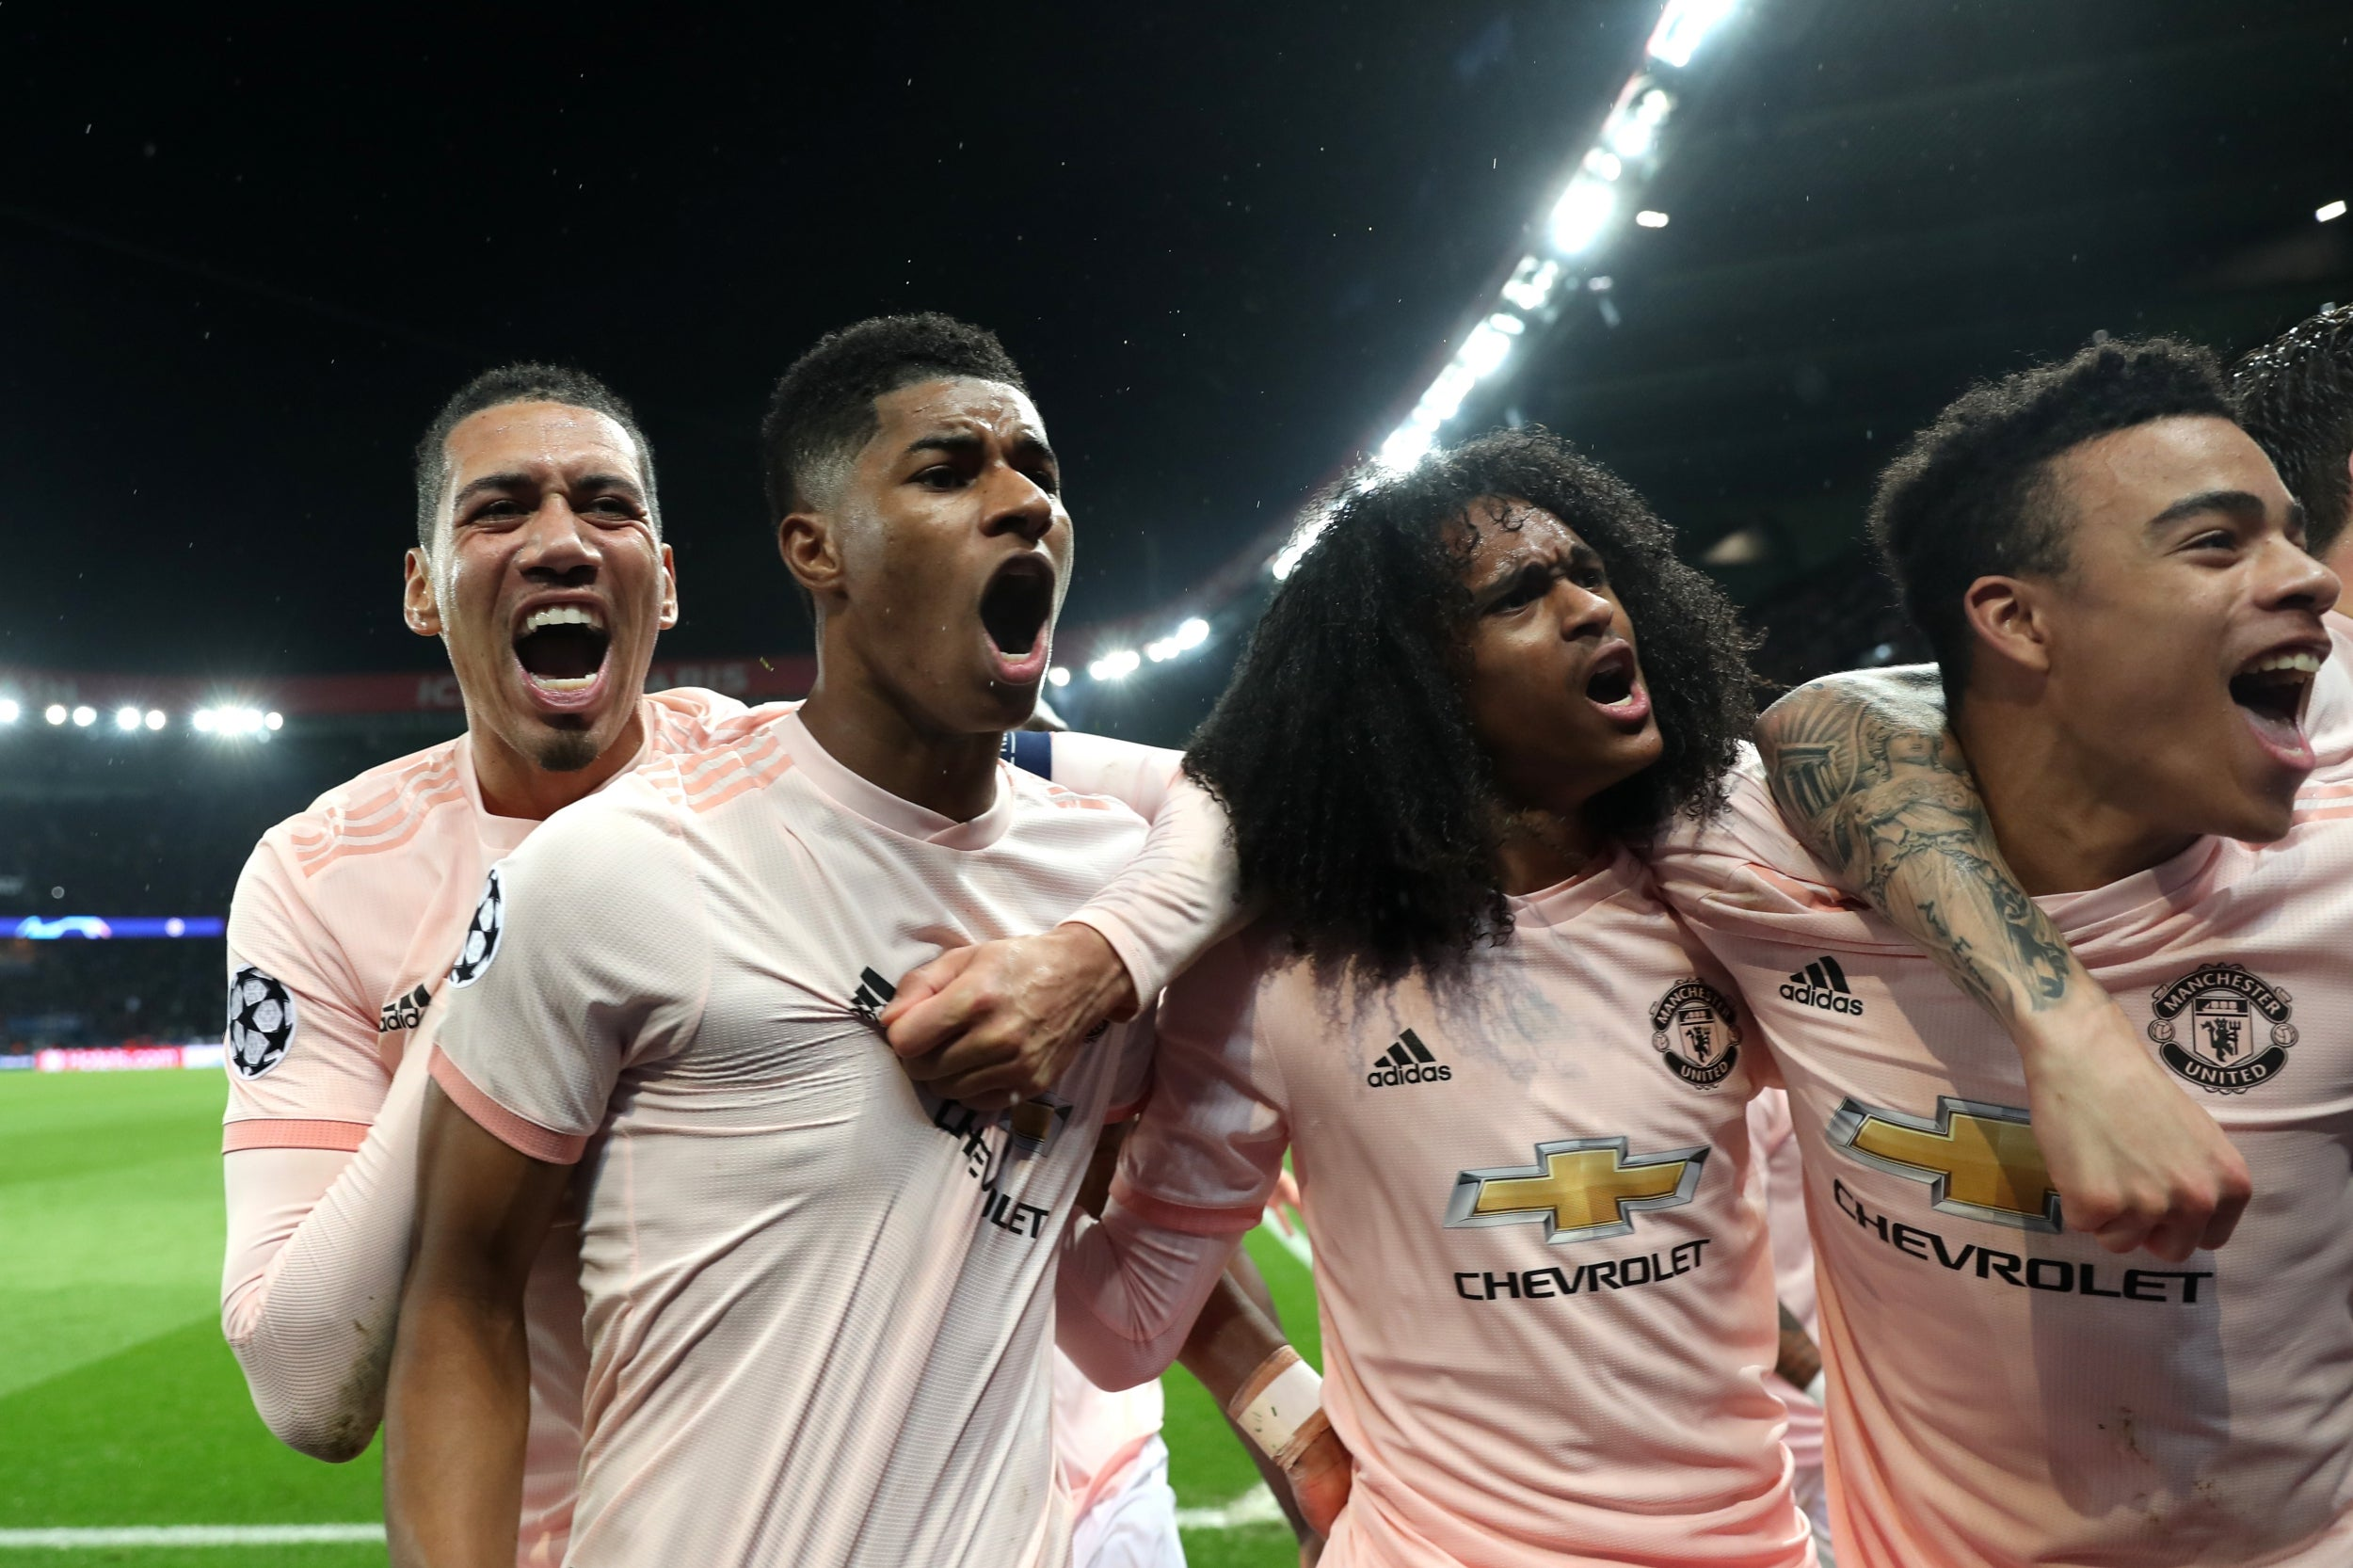 c30cd6c97 PSG vs Manchester United  Jesse Lingard s incredible reaction after Marcus  Rashford scores penalty